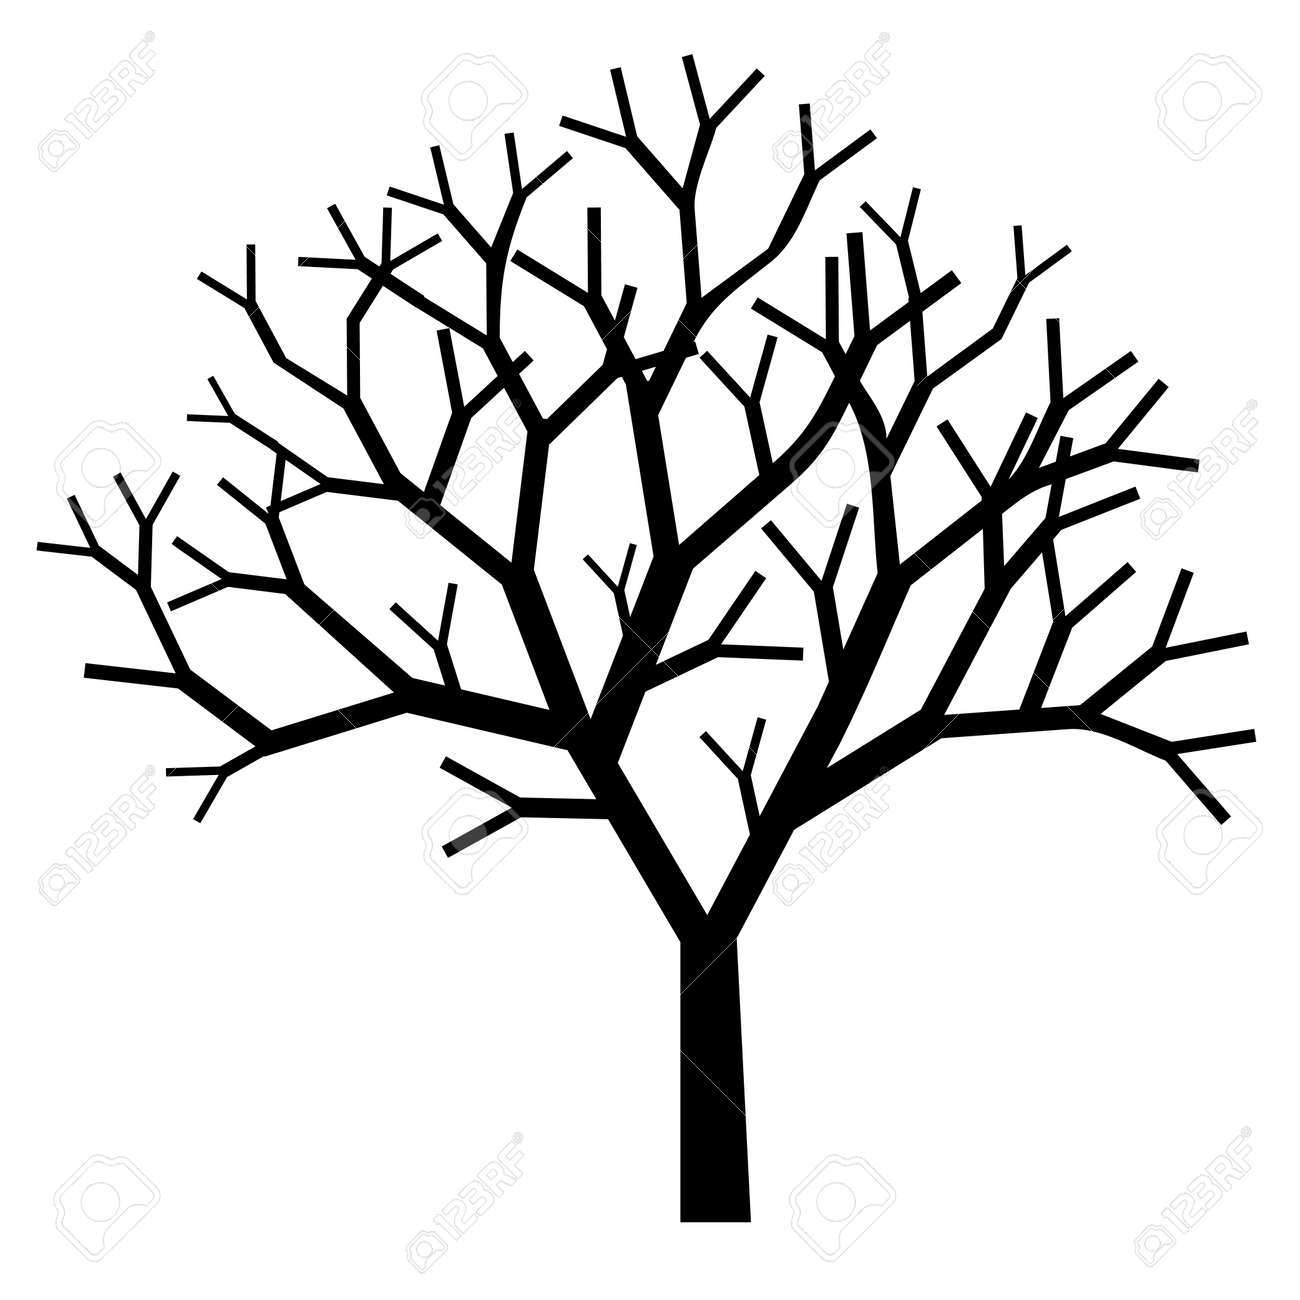 tree silhouette royalty free cliparts vectors and stock rh 123rf com tree silhouette vector svg tree silhouette vector svg